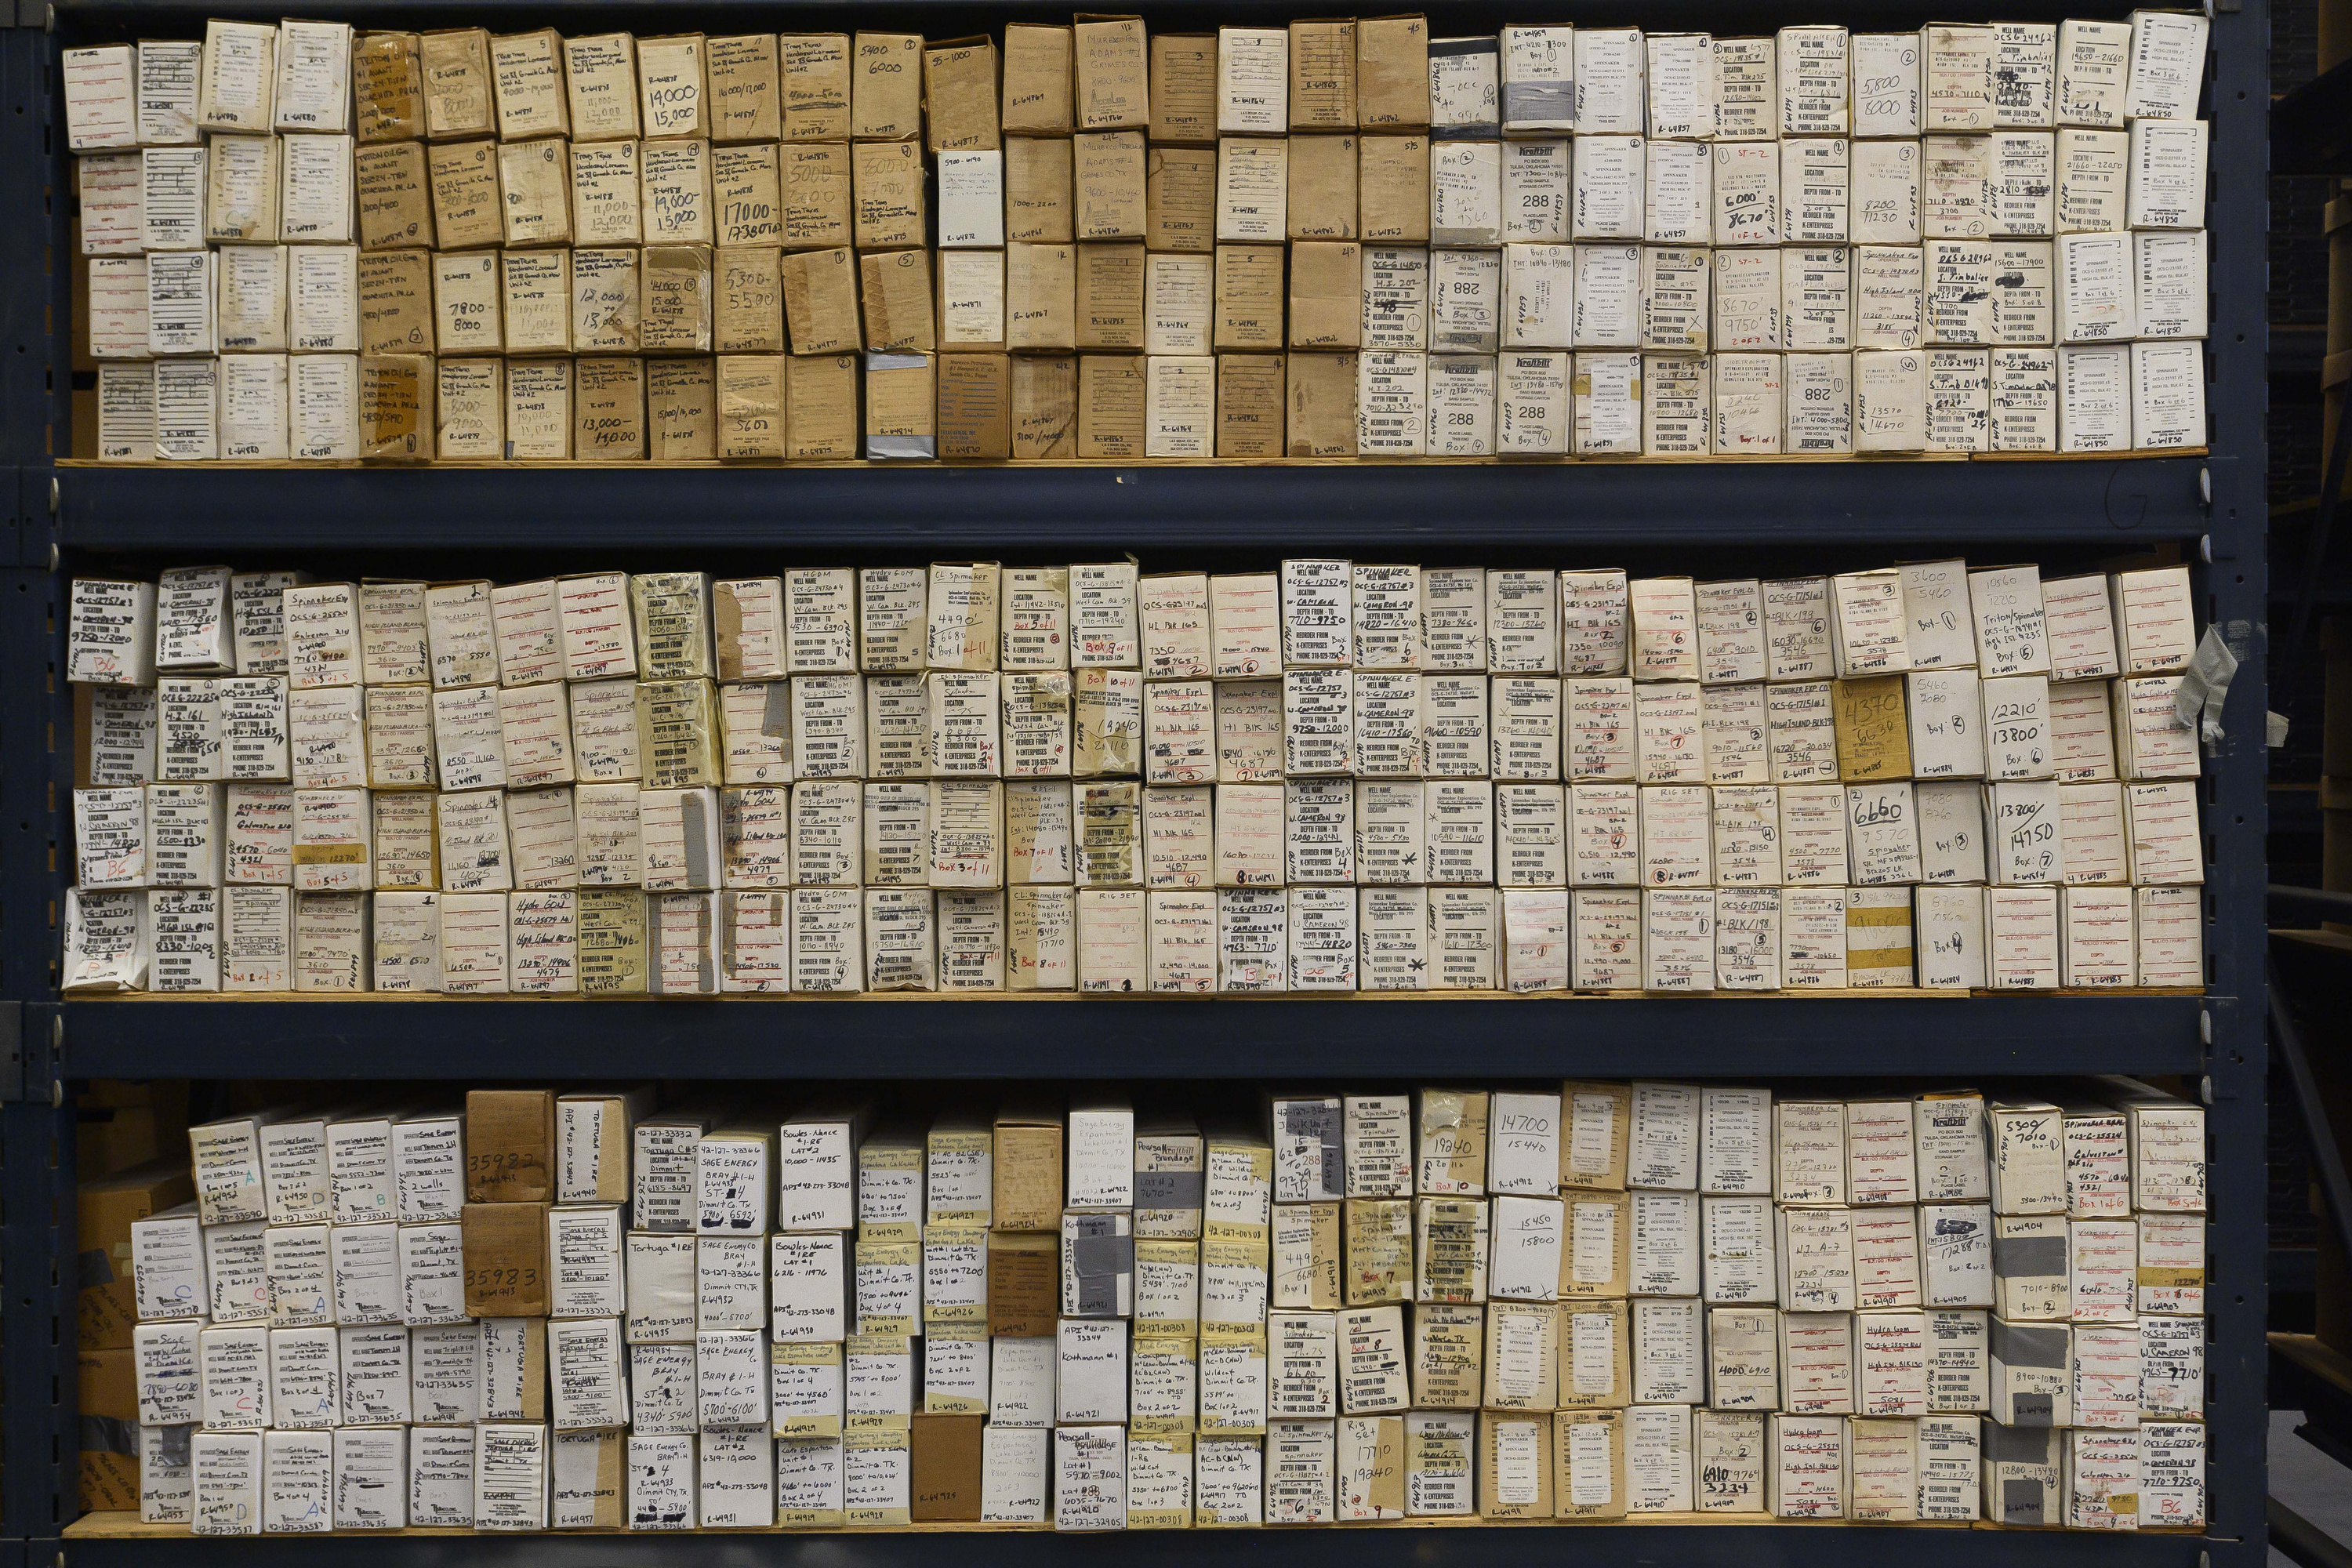 Rows of small brown boxes that contain core samples, all labeled with the location of the well, the date, etc.